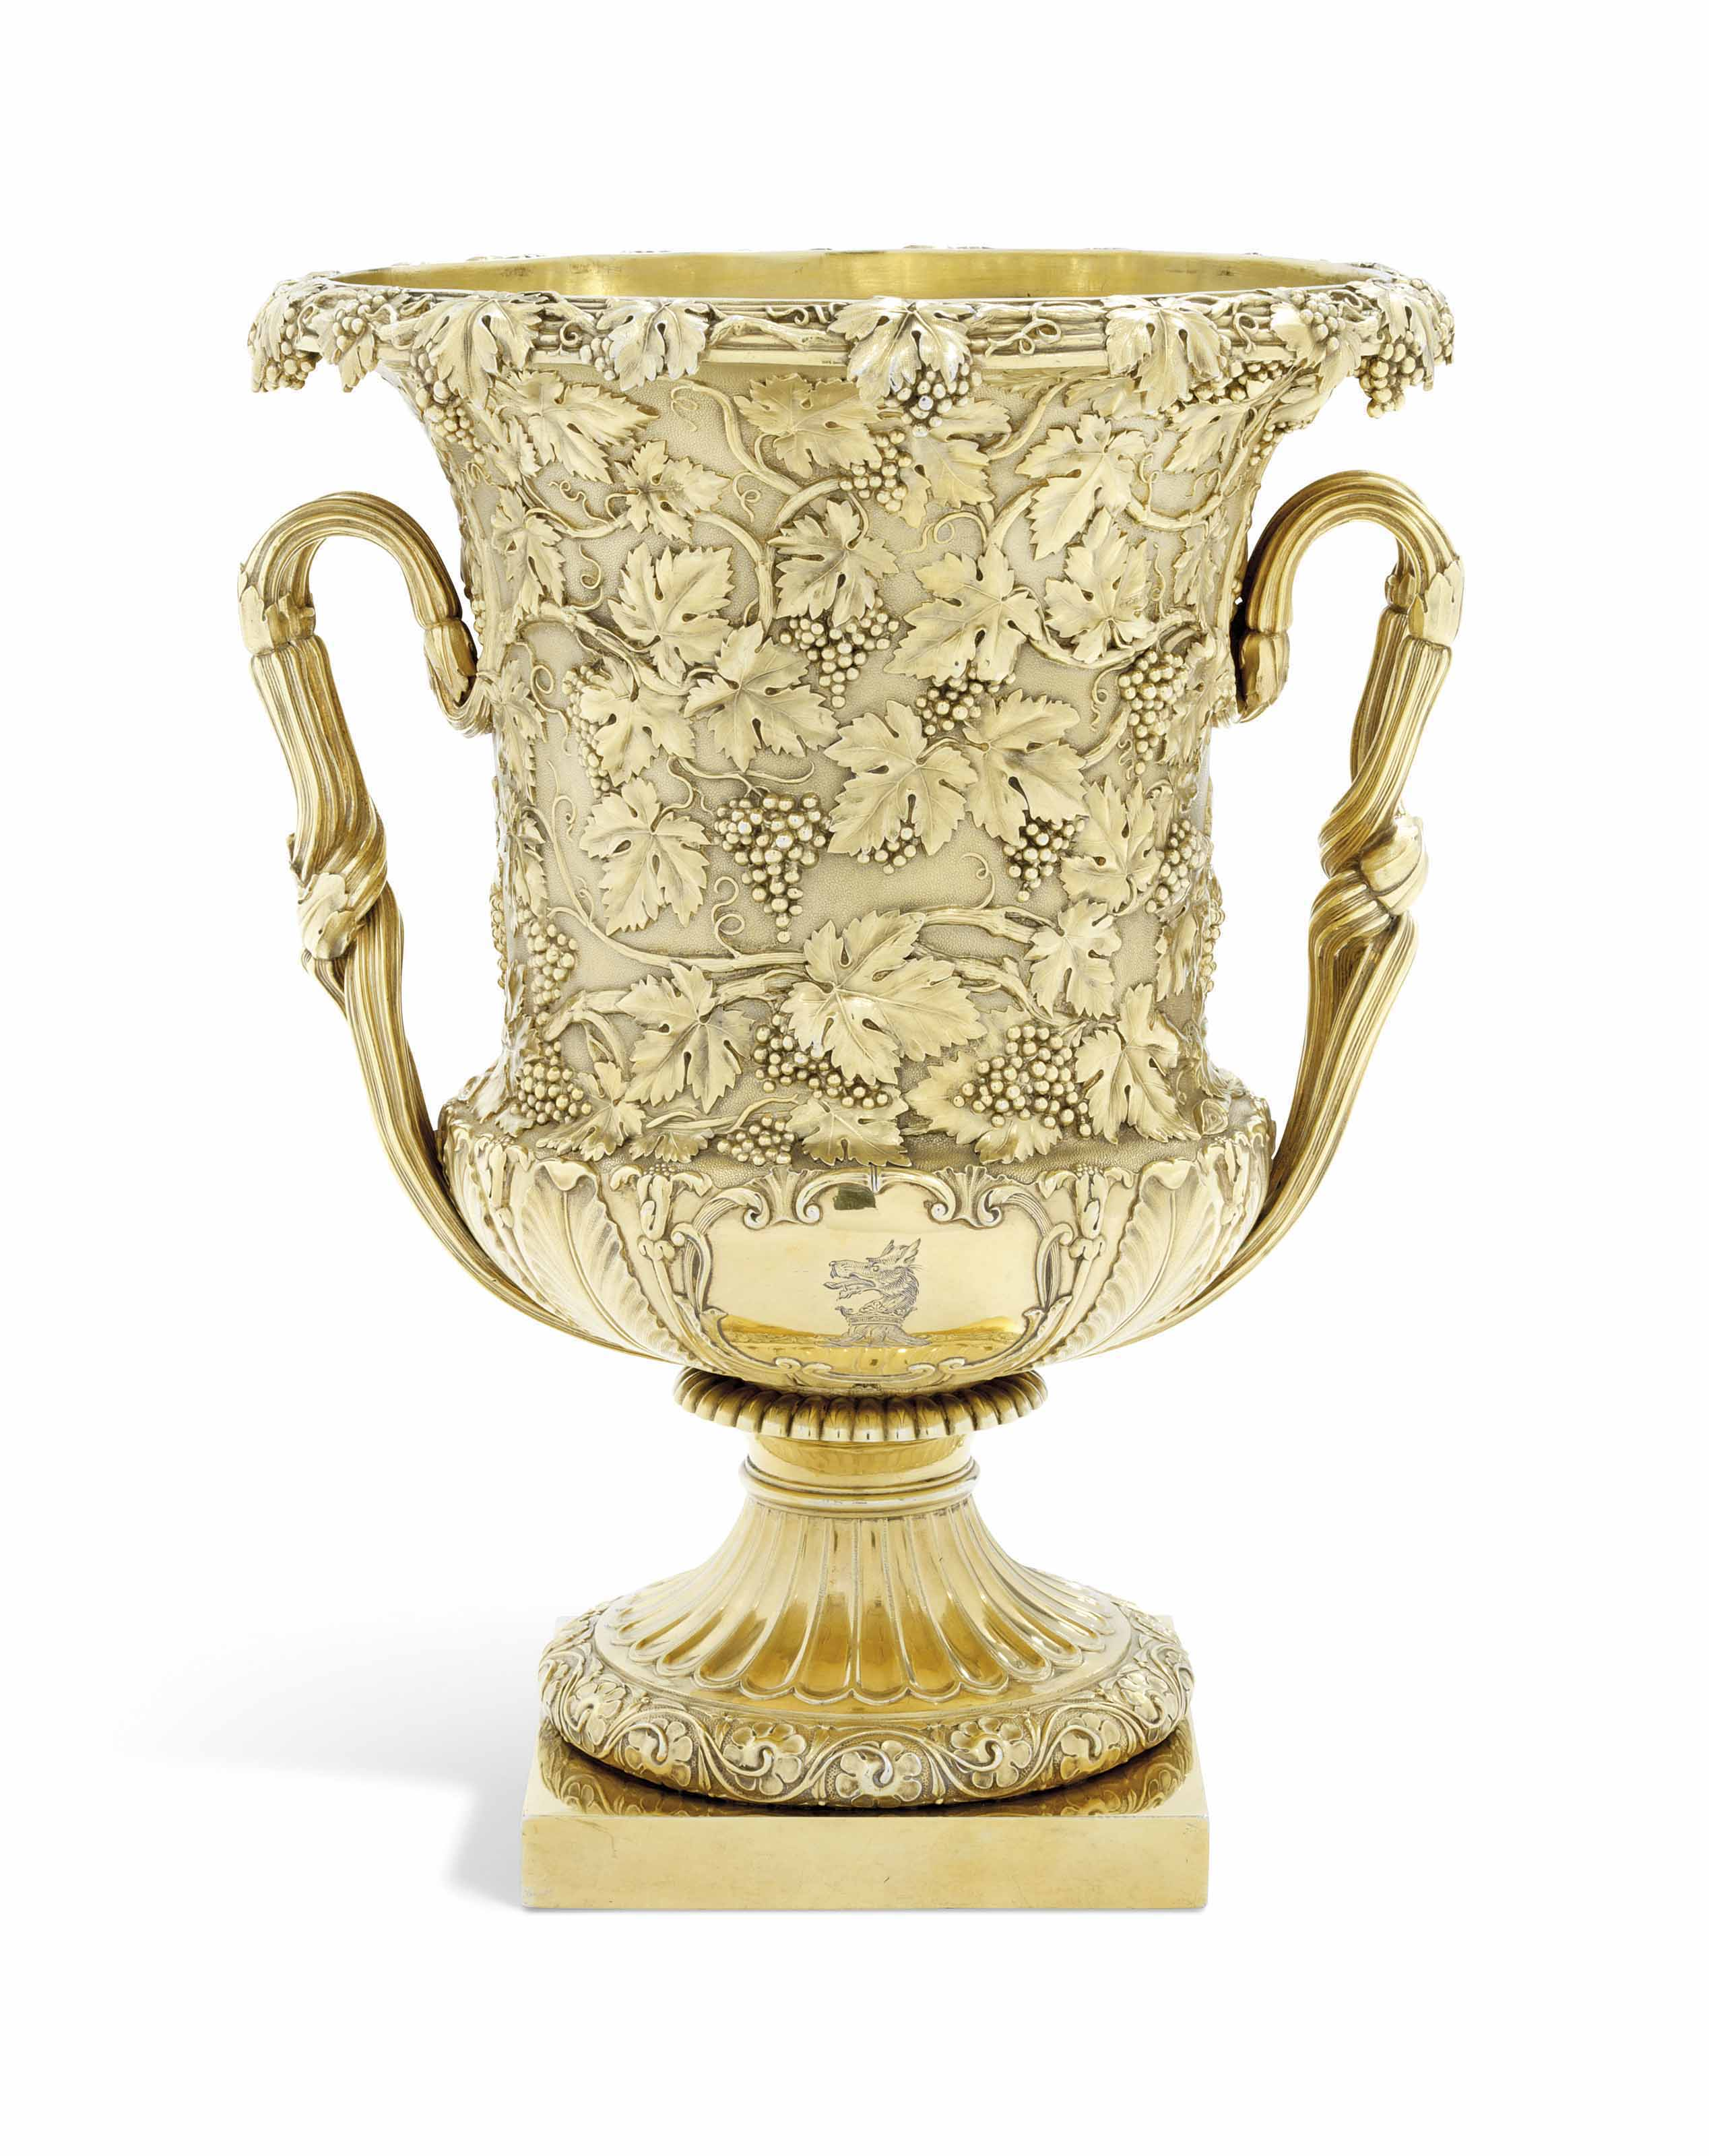 A GEORGE IV SILVER-GILT WINE-C